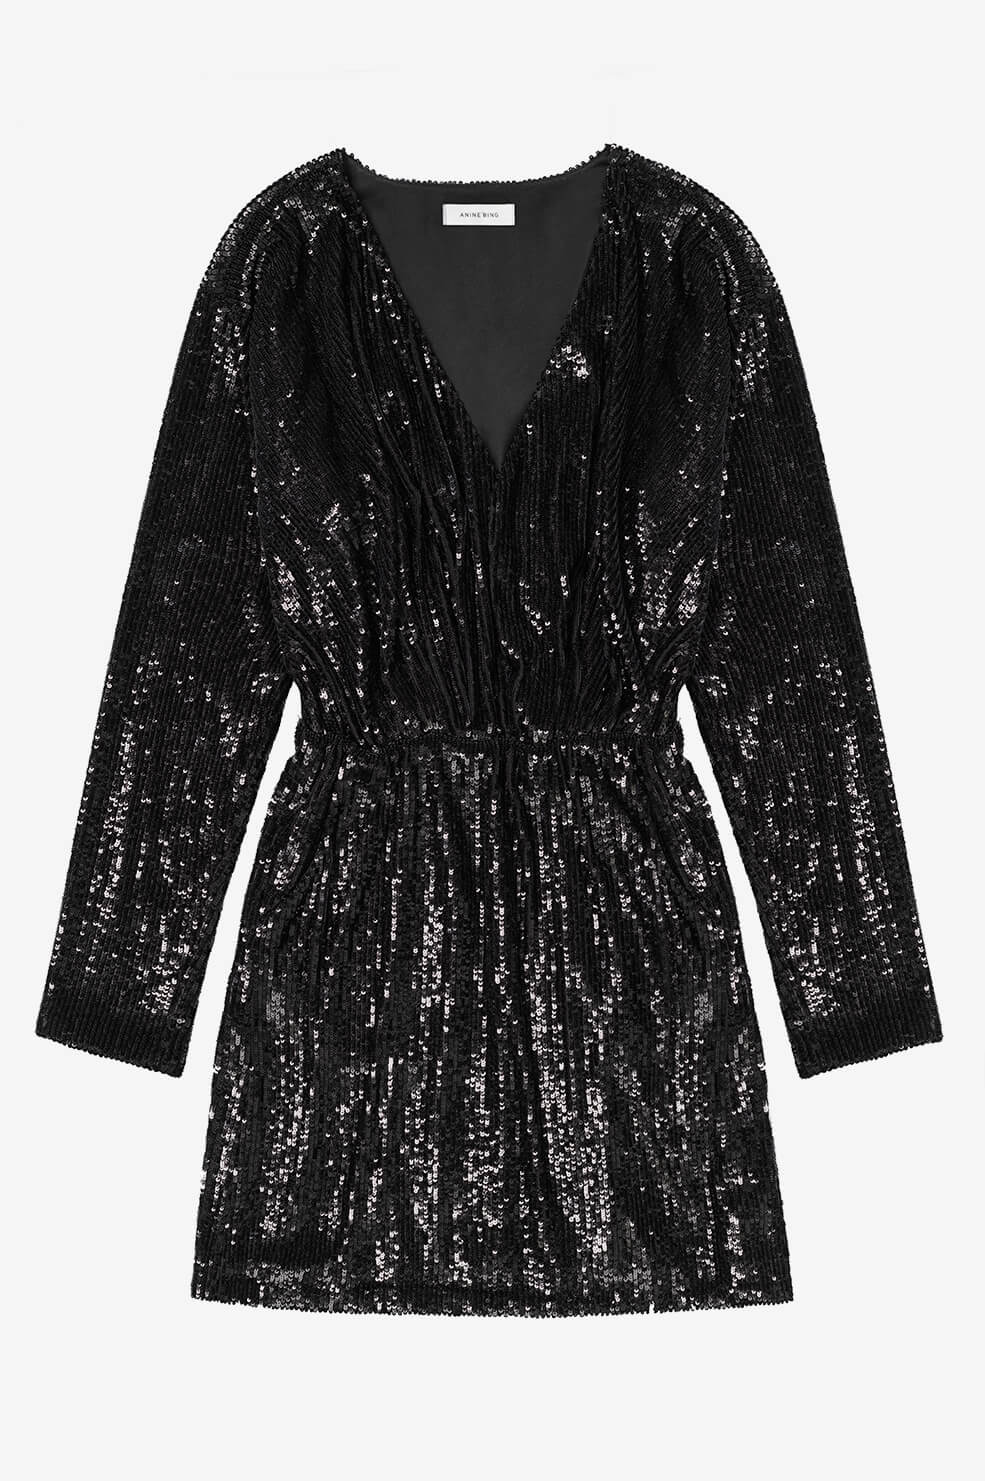 ANINE BING Elena Dress - Black Sequin